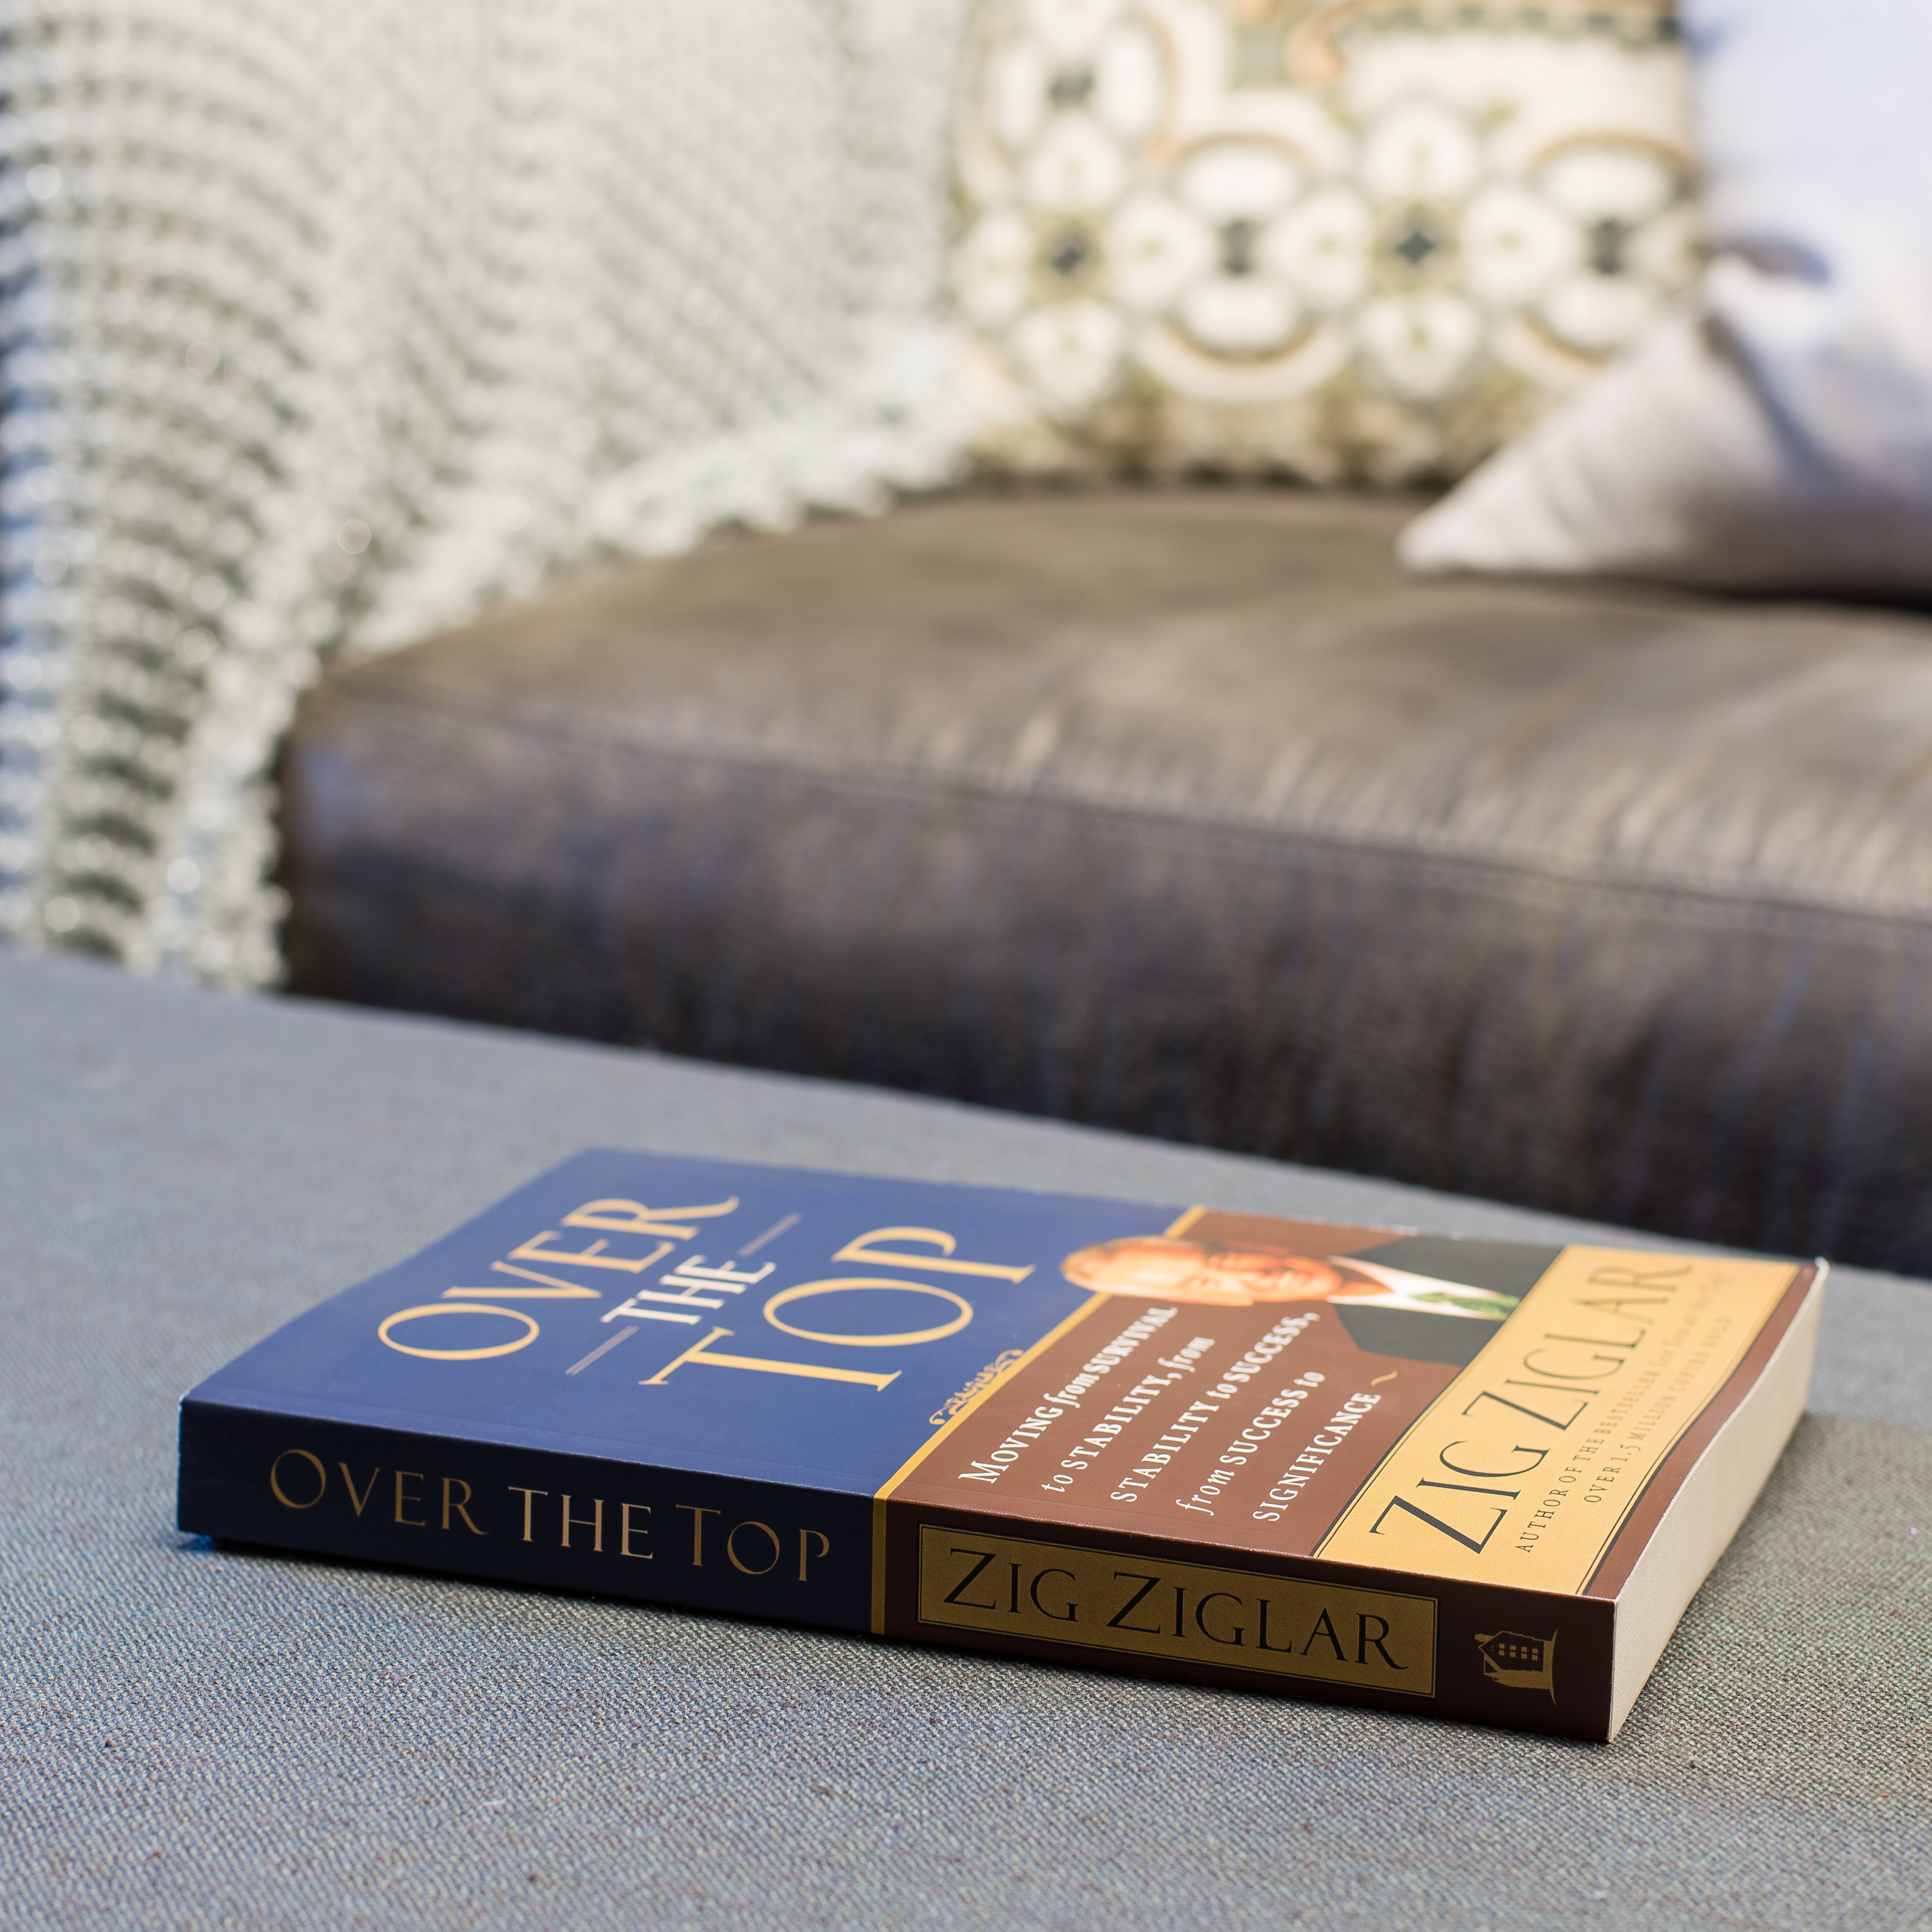 zig ziglars over the top essay After 32 years as the heart and soul of a business, zig ziglar is handing over his company to his son and son-in-law ziglar, the internationally known motivational speaker, is giving up his day.